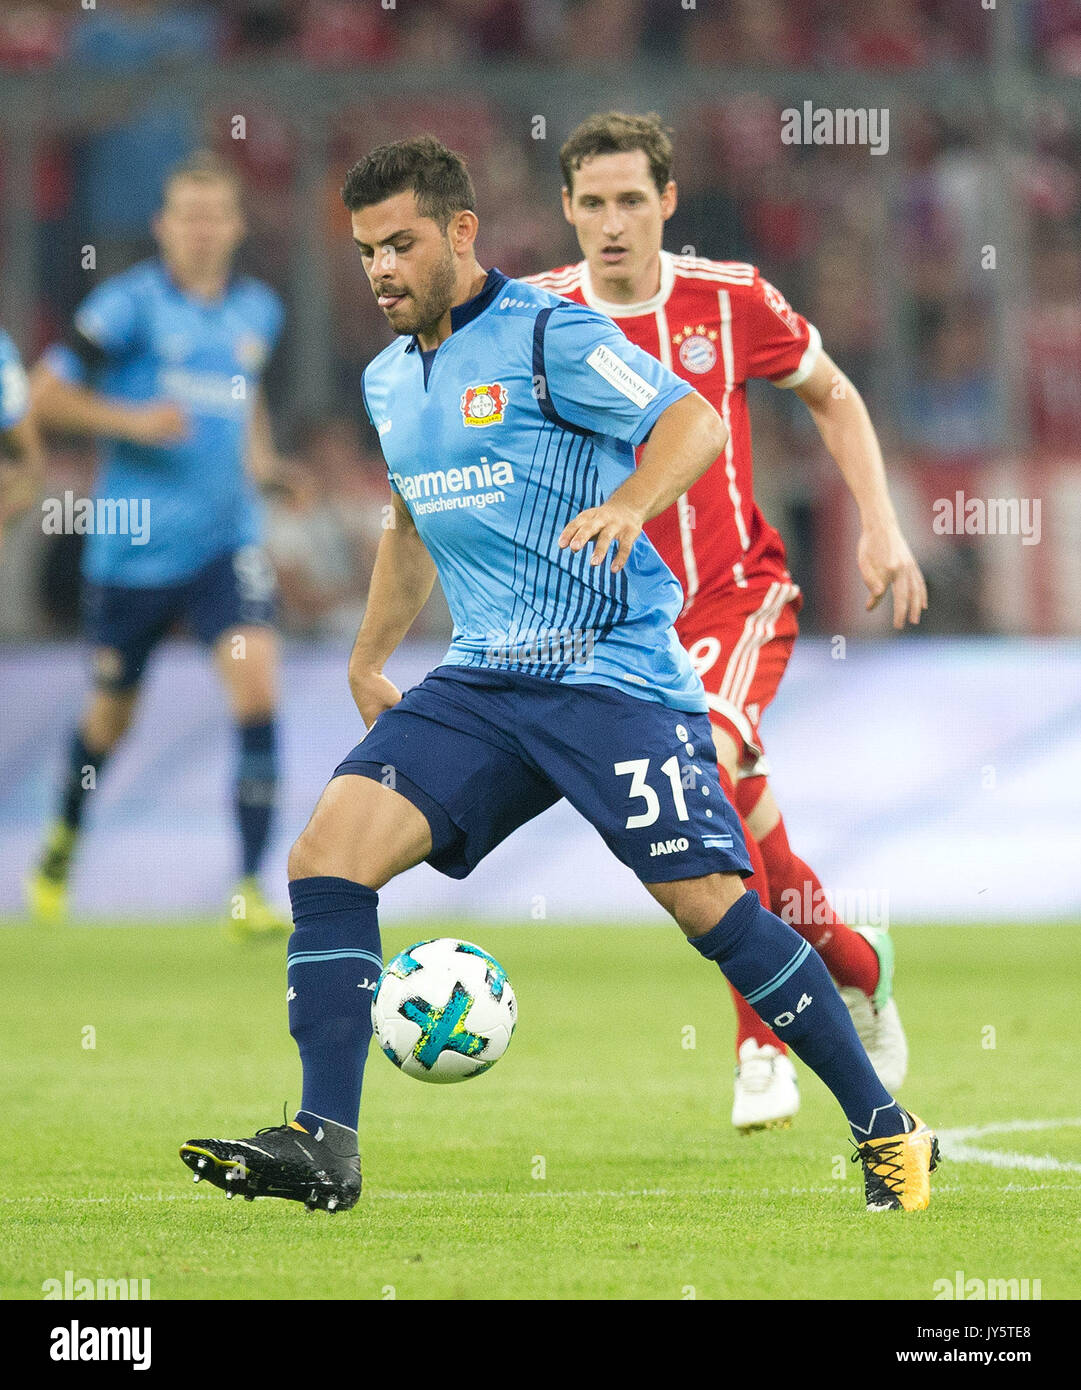 Deutschland. 18th Aug, 2017. Kevin VOLLAND (Leverkusen) mit Ball, Einzelaktion GES/ Fussball/ 1. Bundesliga: FC Bayern Munich - Bayer 04 Leverkusen, 18.08.2017 -- Football/ Soccer 1st. German Bundesliga Division: Bavaria Munich vs Bayer 04 Leverkusen, Munich, August 18, 2017 | Verwendung weltweit Credit: dpa/Alamy Live News - Stock Image